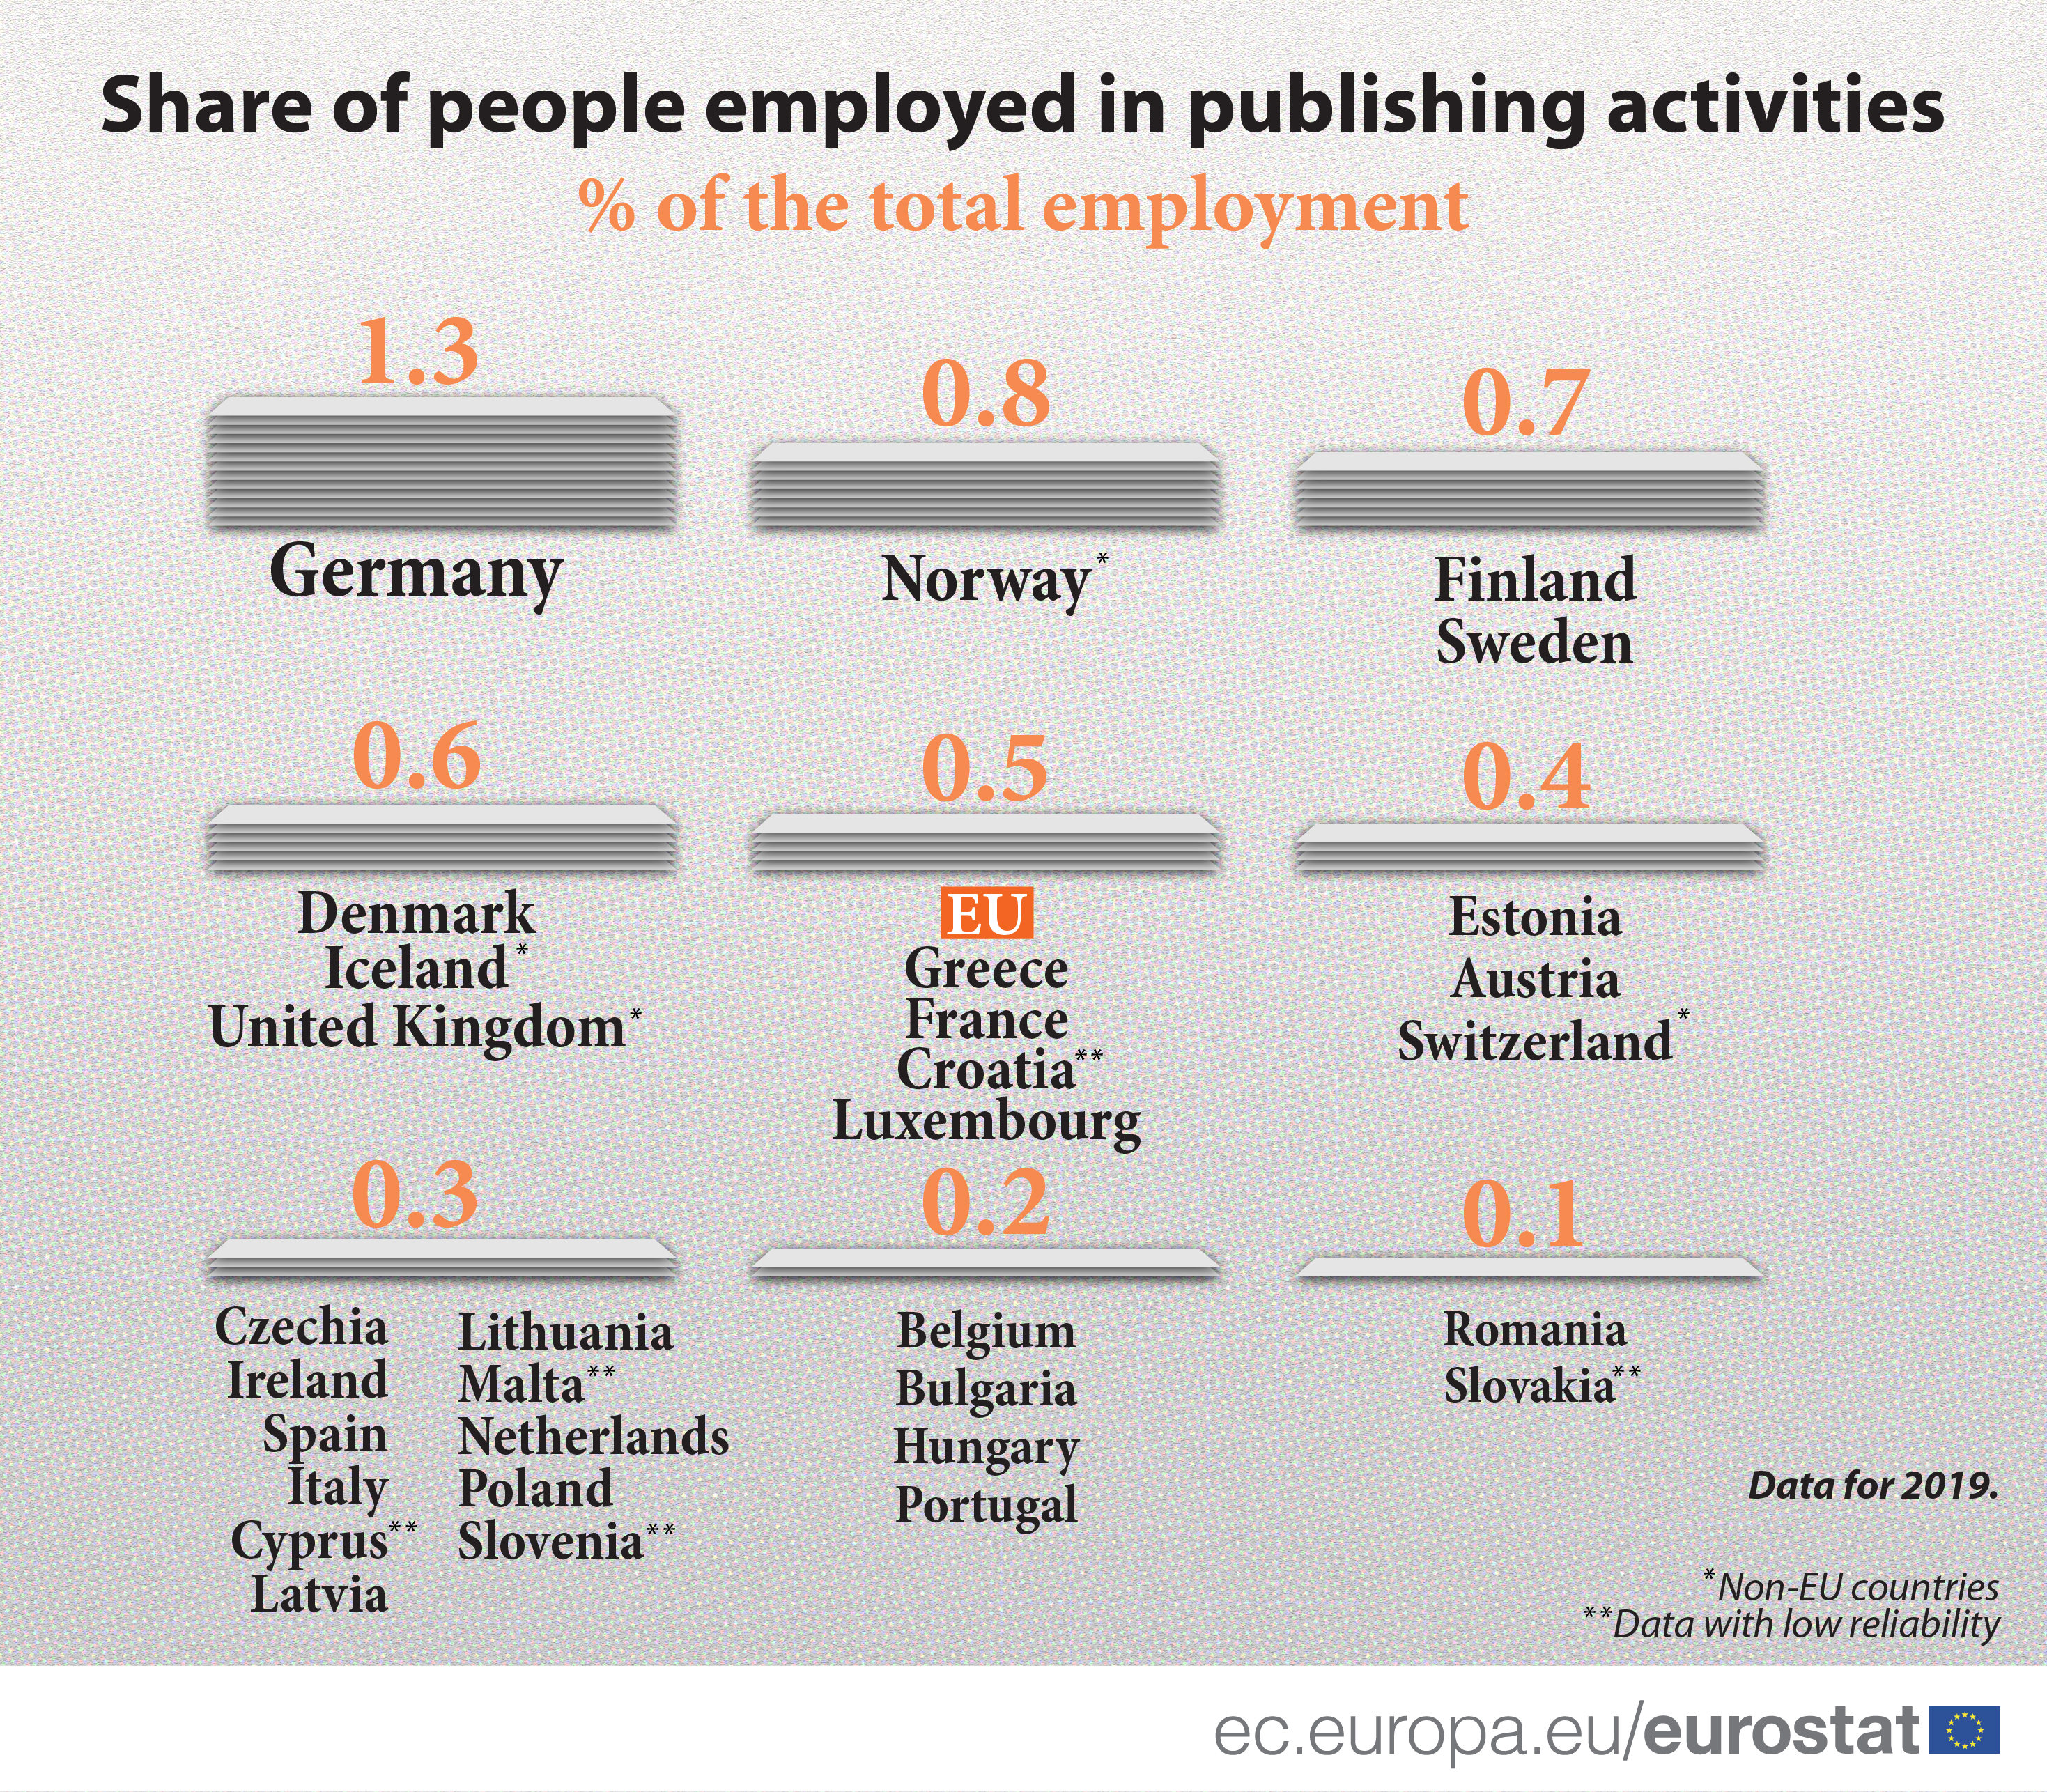 Share of employed in publishing activities, 2019